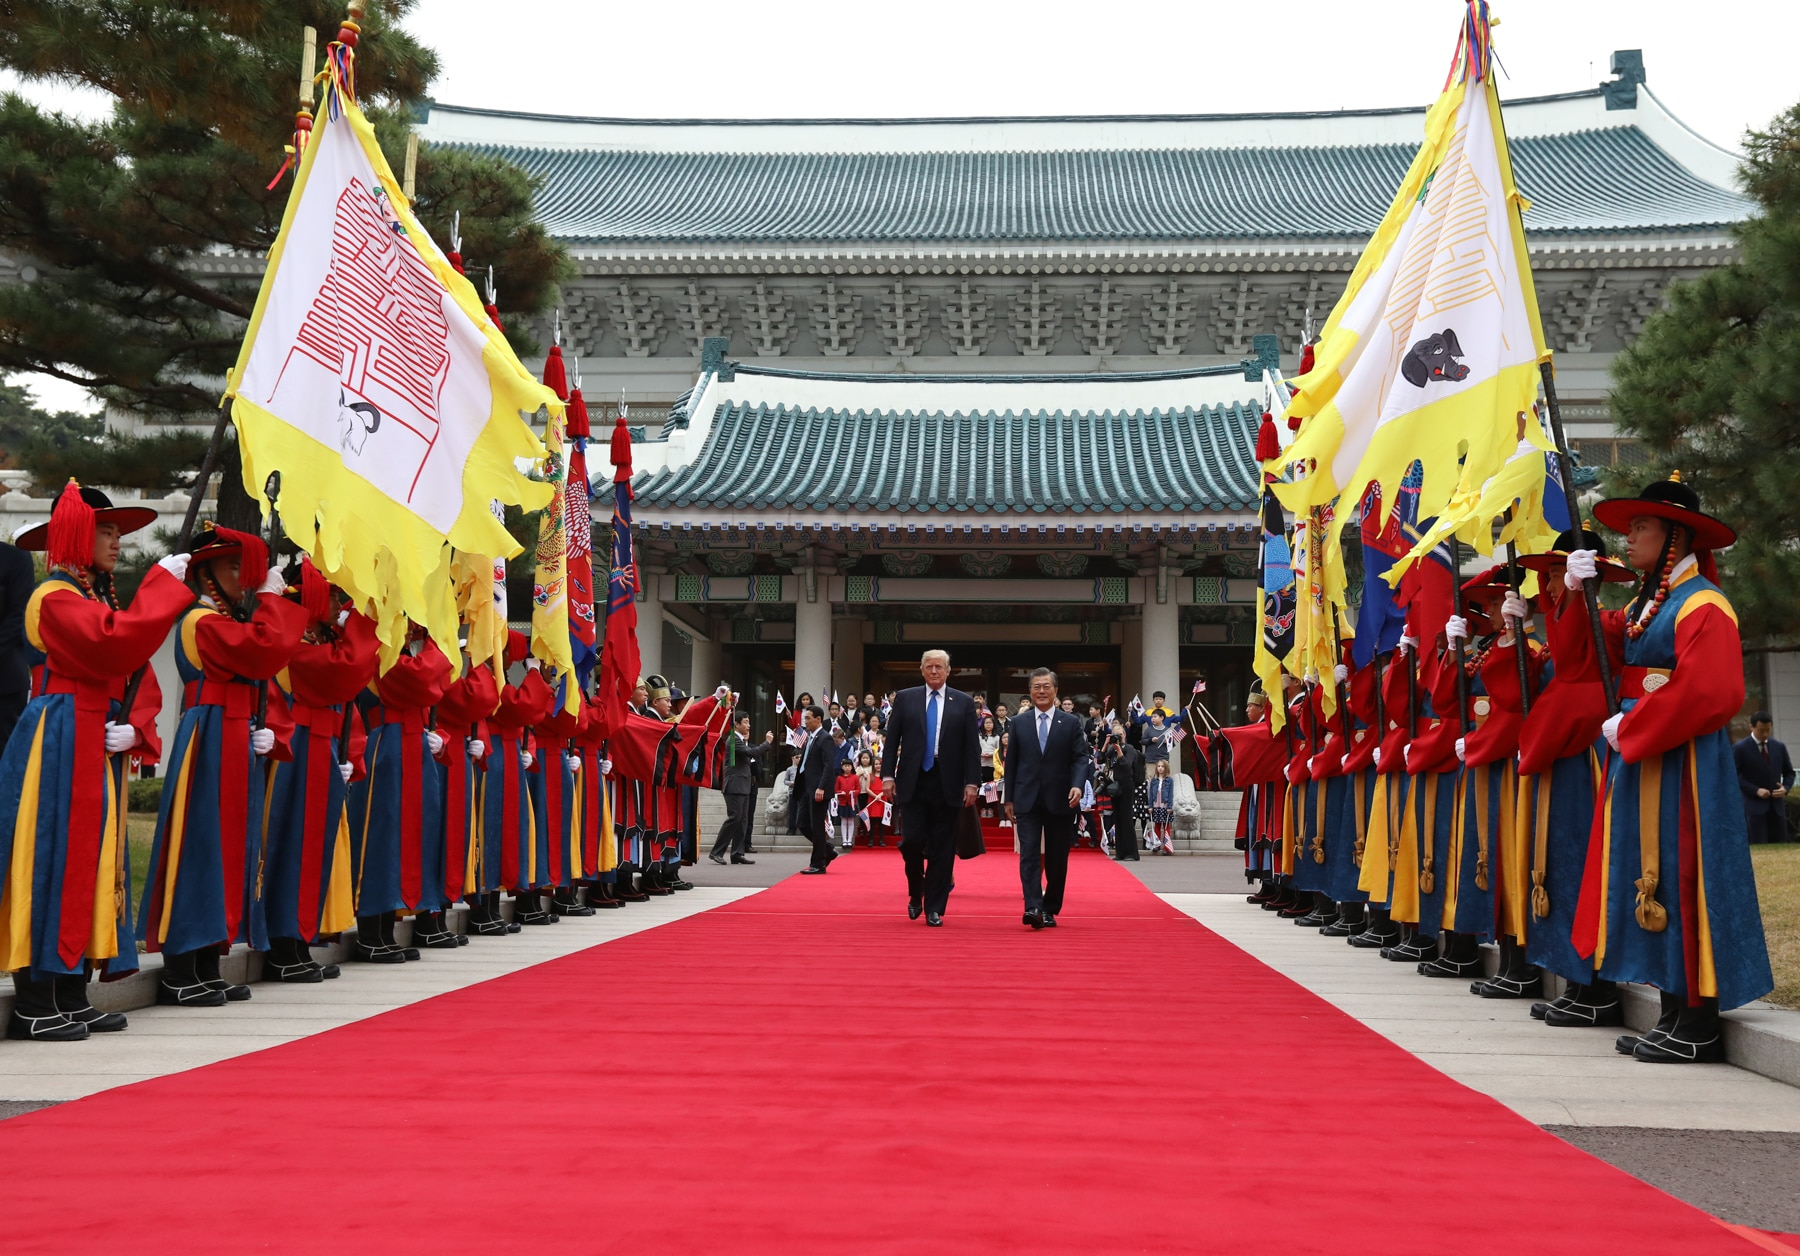 U.S. President Donald Trump and South Korean President Moon Jae-in walking past an honor guard (© SeongJoon Cho/Bloomberg via Getty Images)